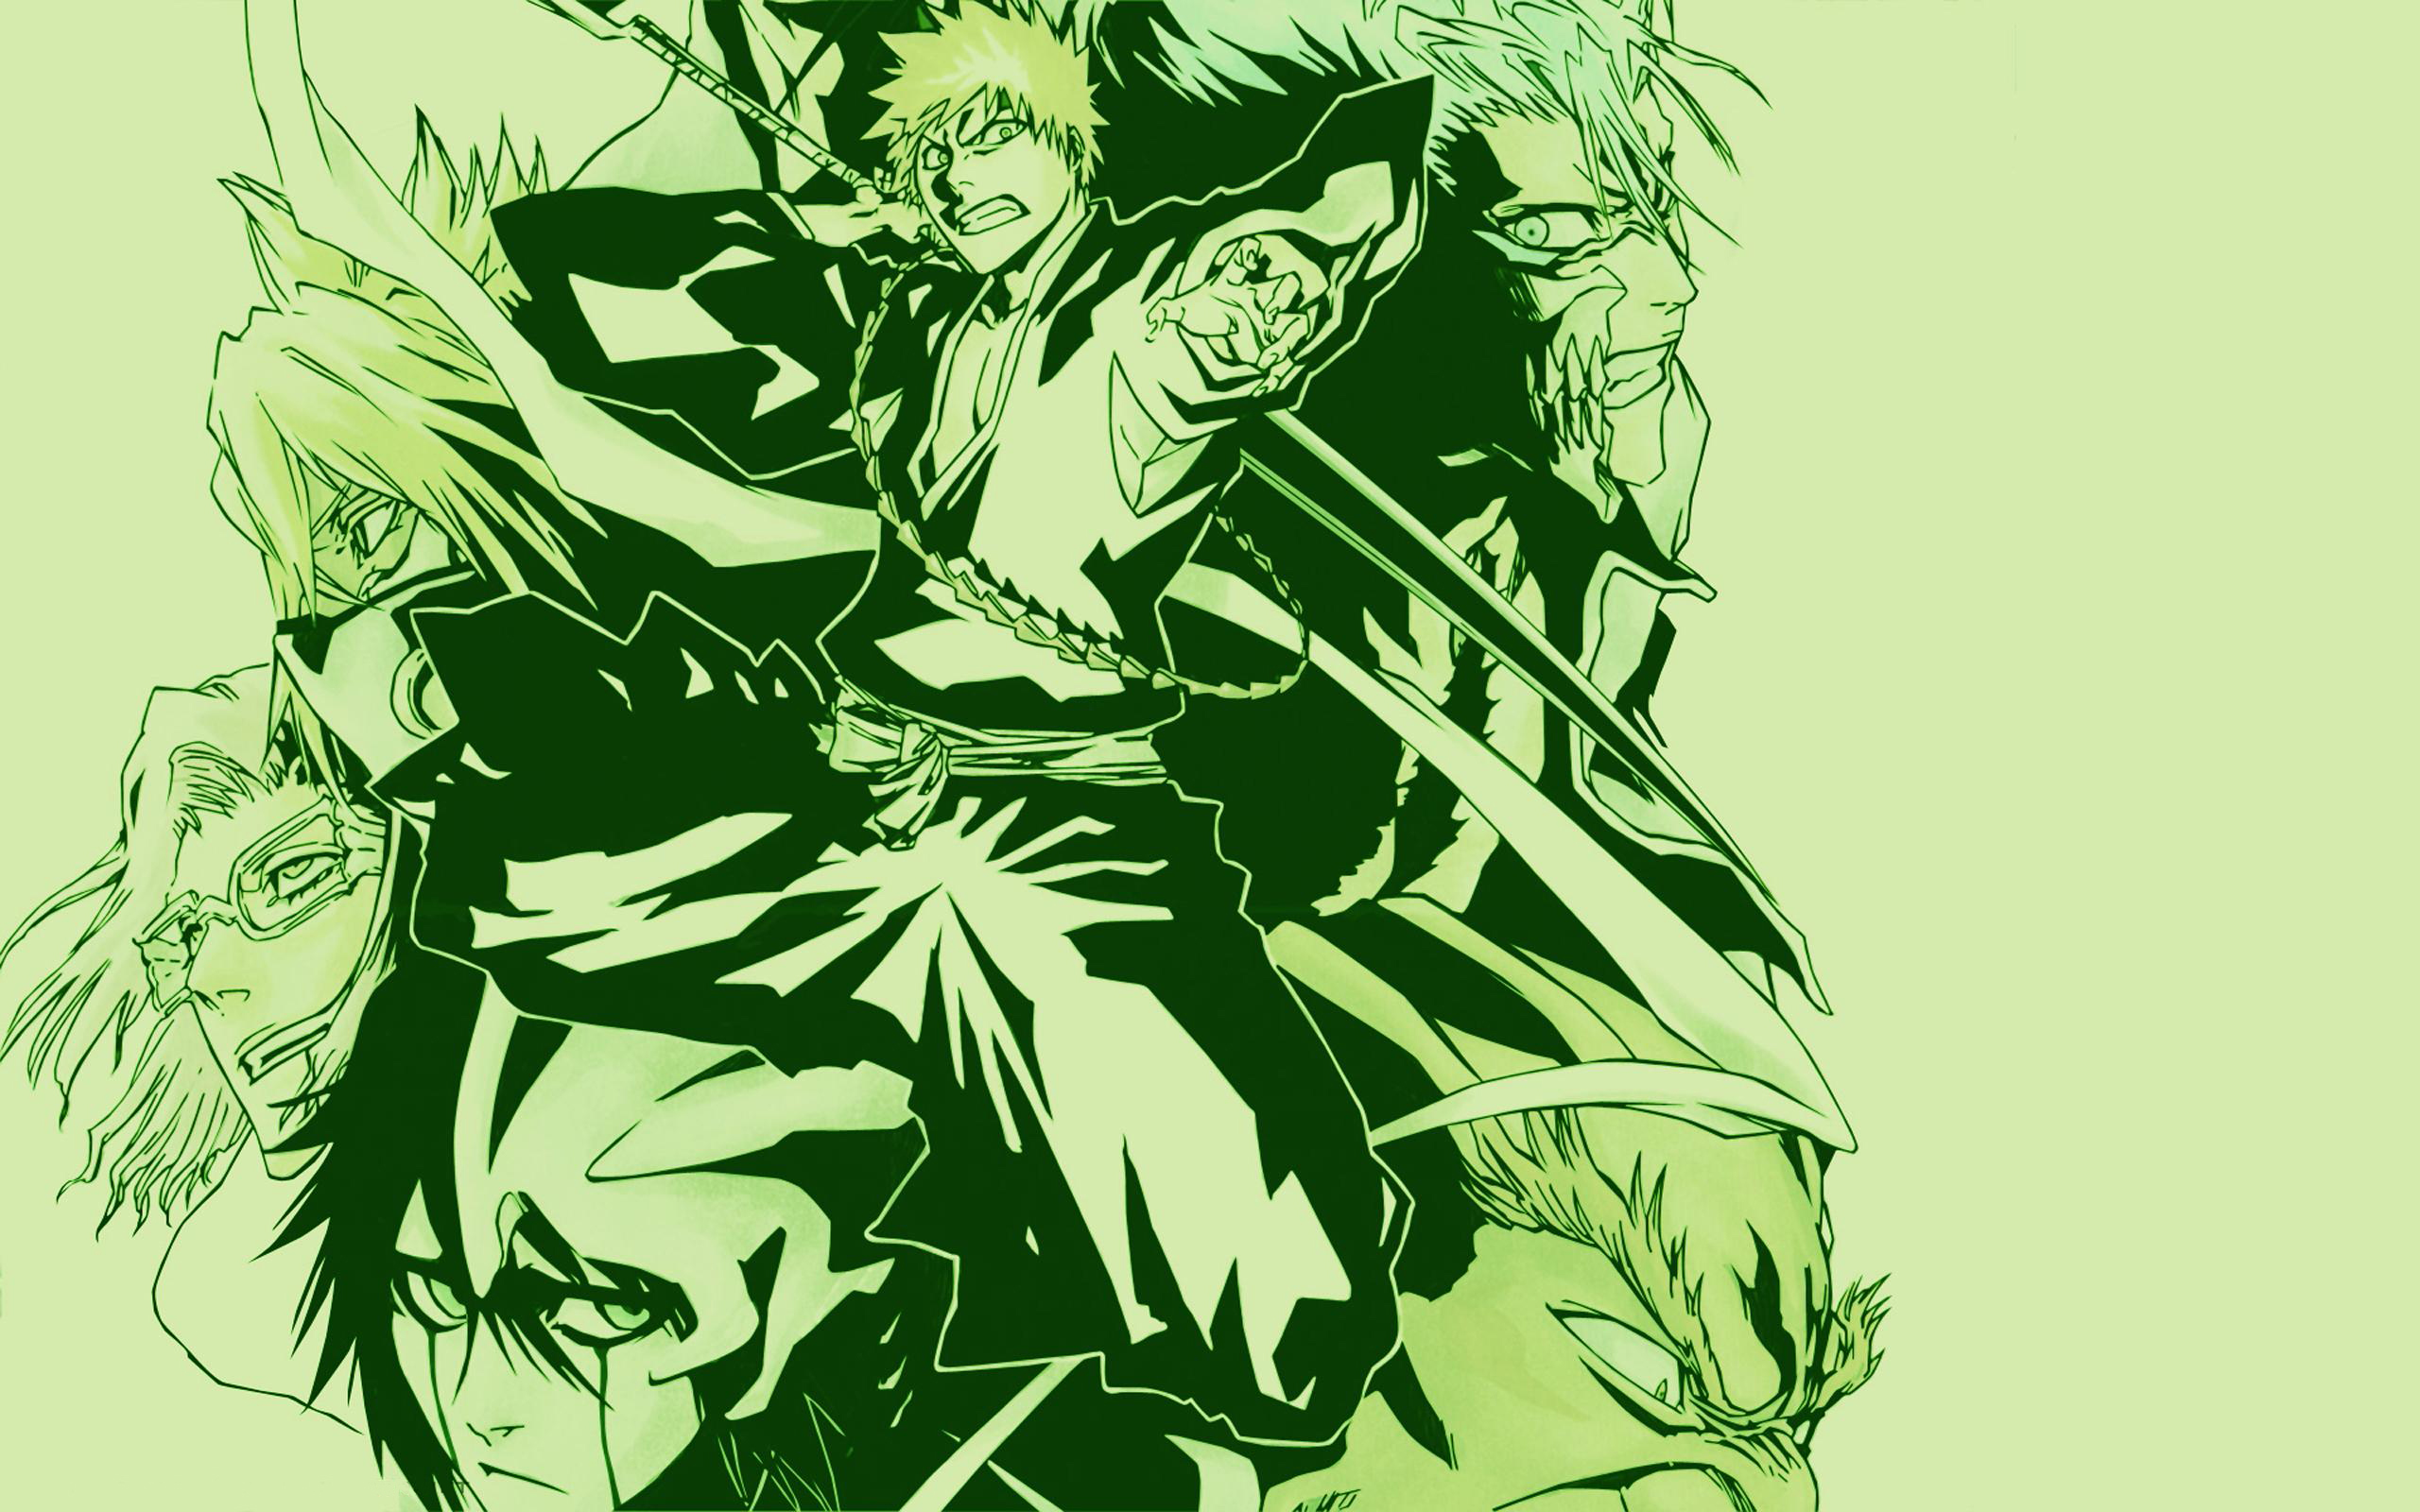 Chevron Quote Wallpaper Bleach Kurosaki Ichigo Tia Harribel Espada Grimmjow